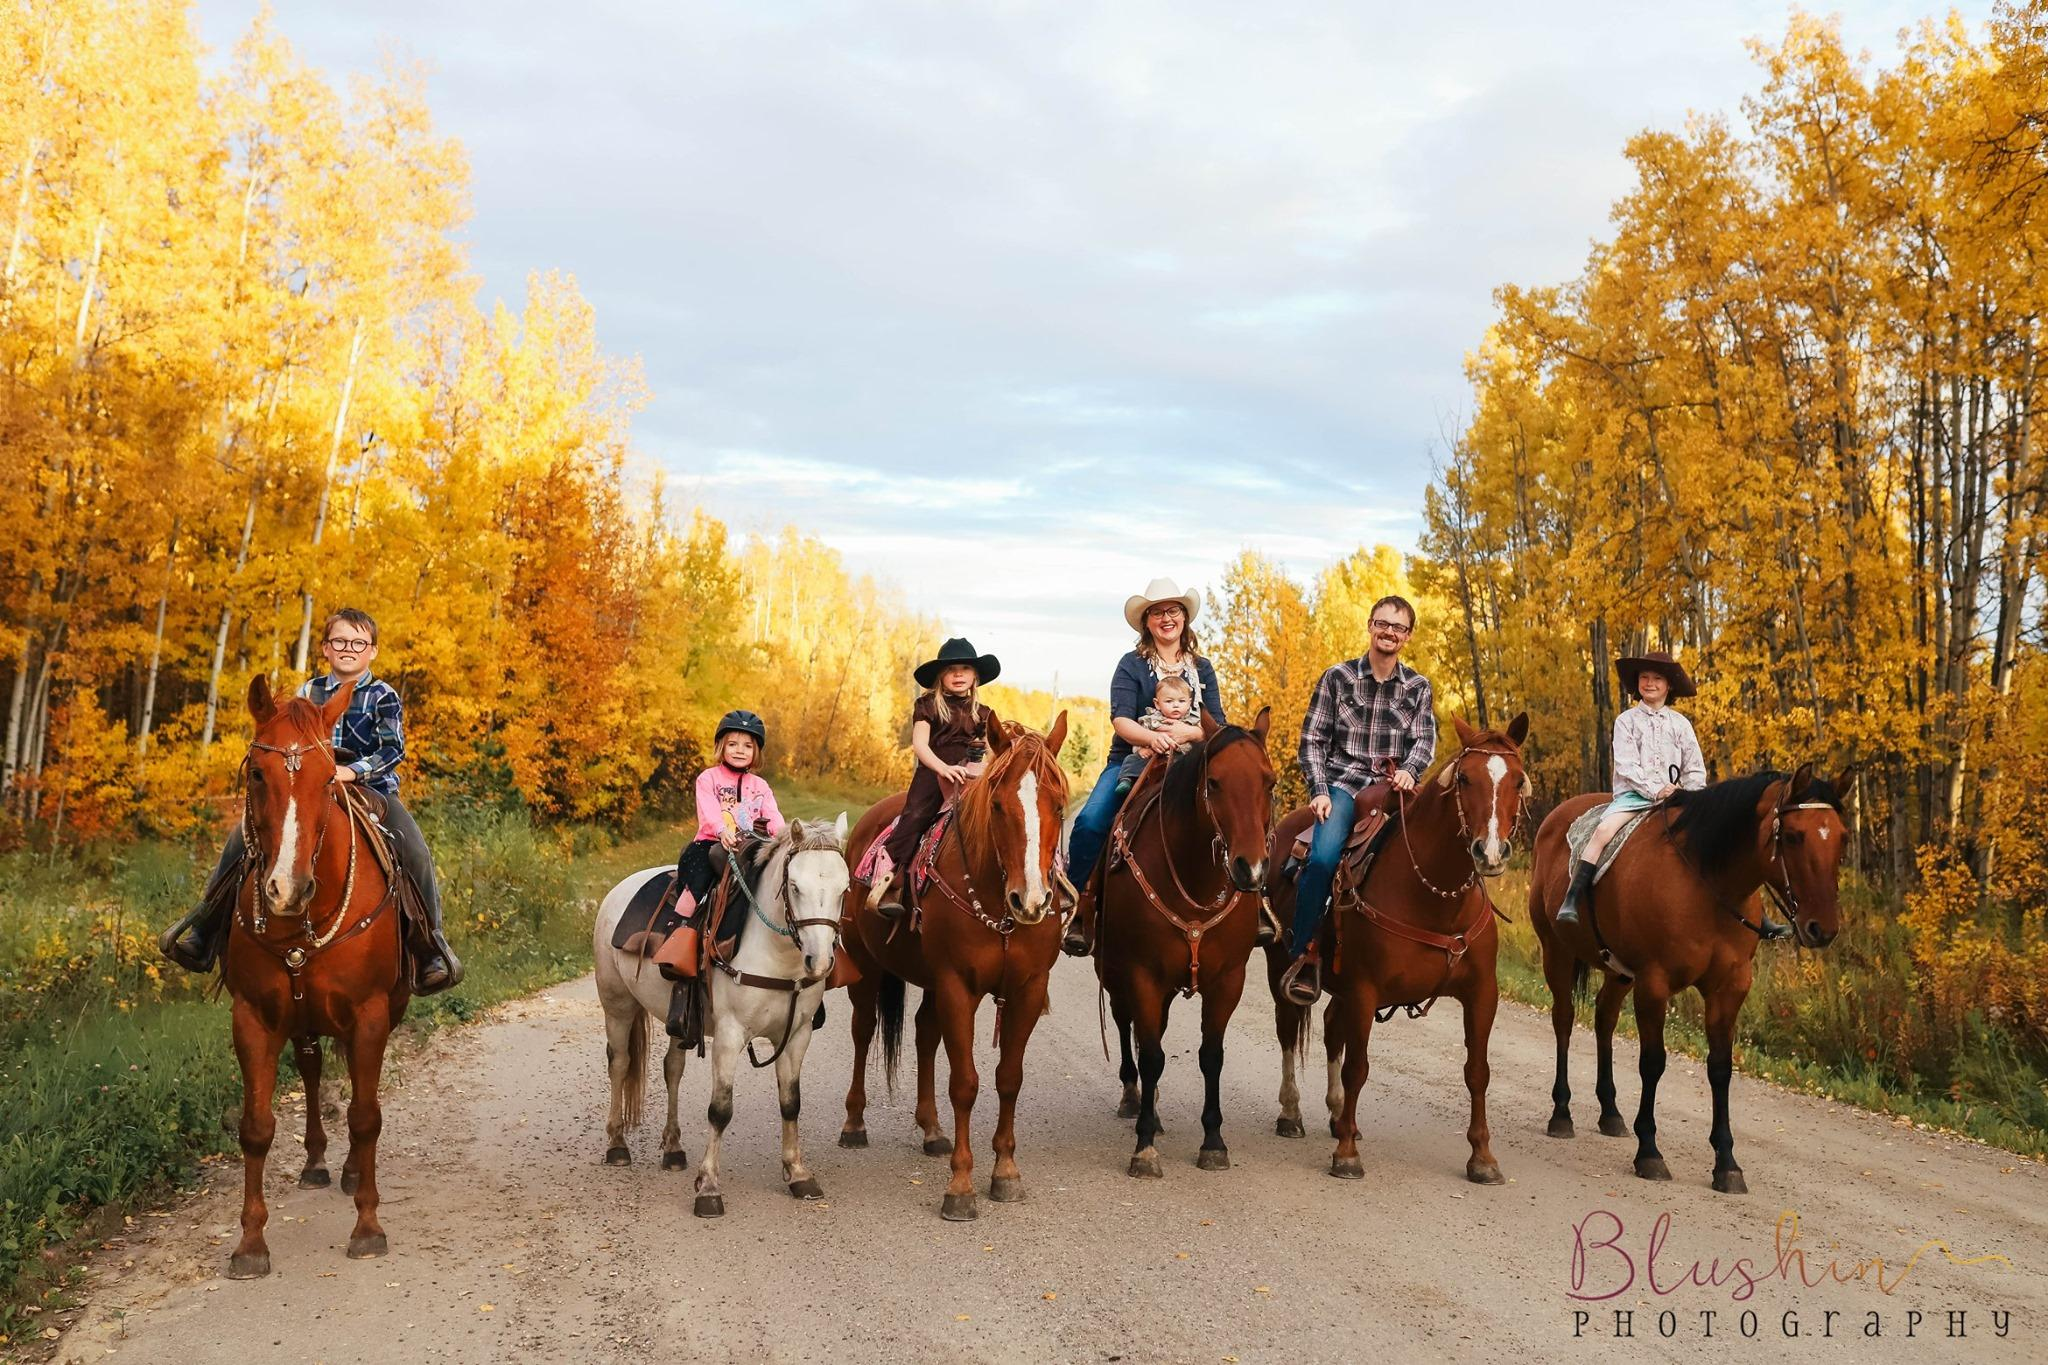 giesbrecht family, all on horses, stands in a row